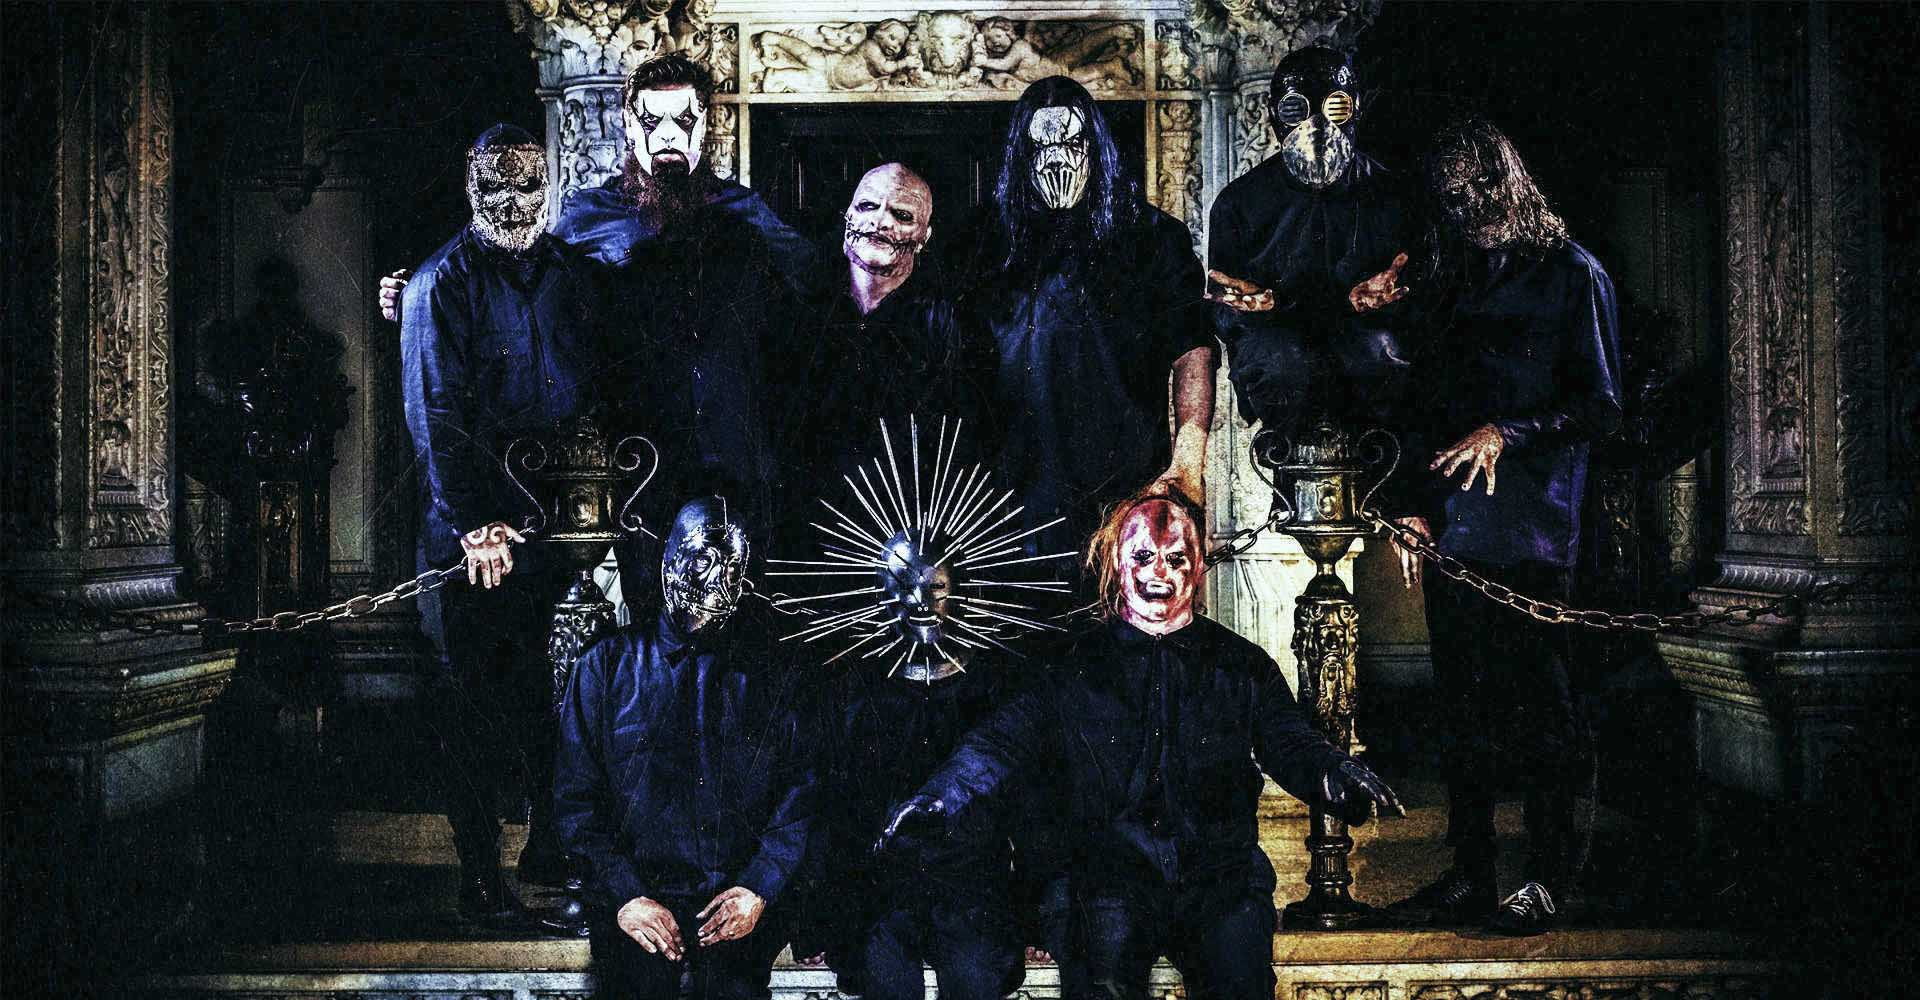 Slipknot: Custer – Live at KnotFest U.S, 2014